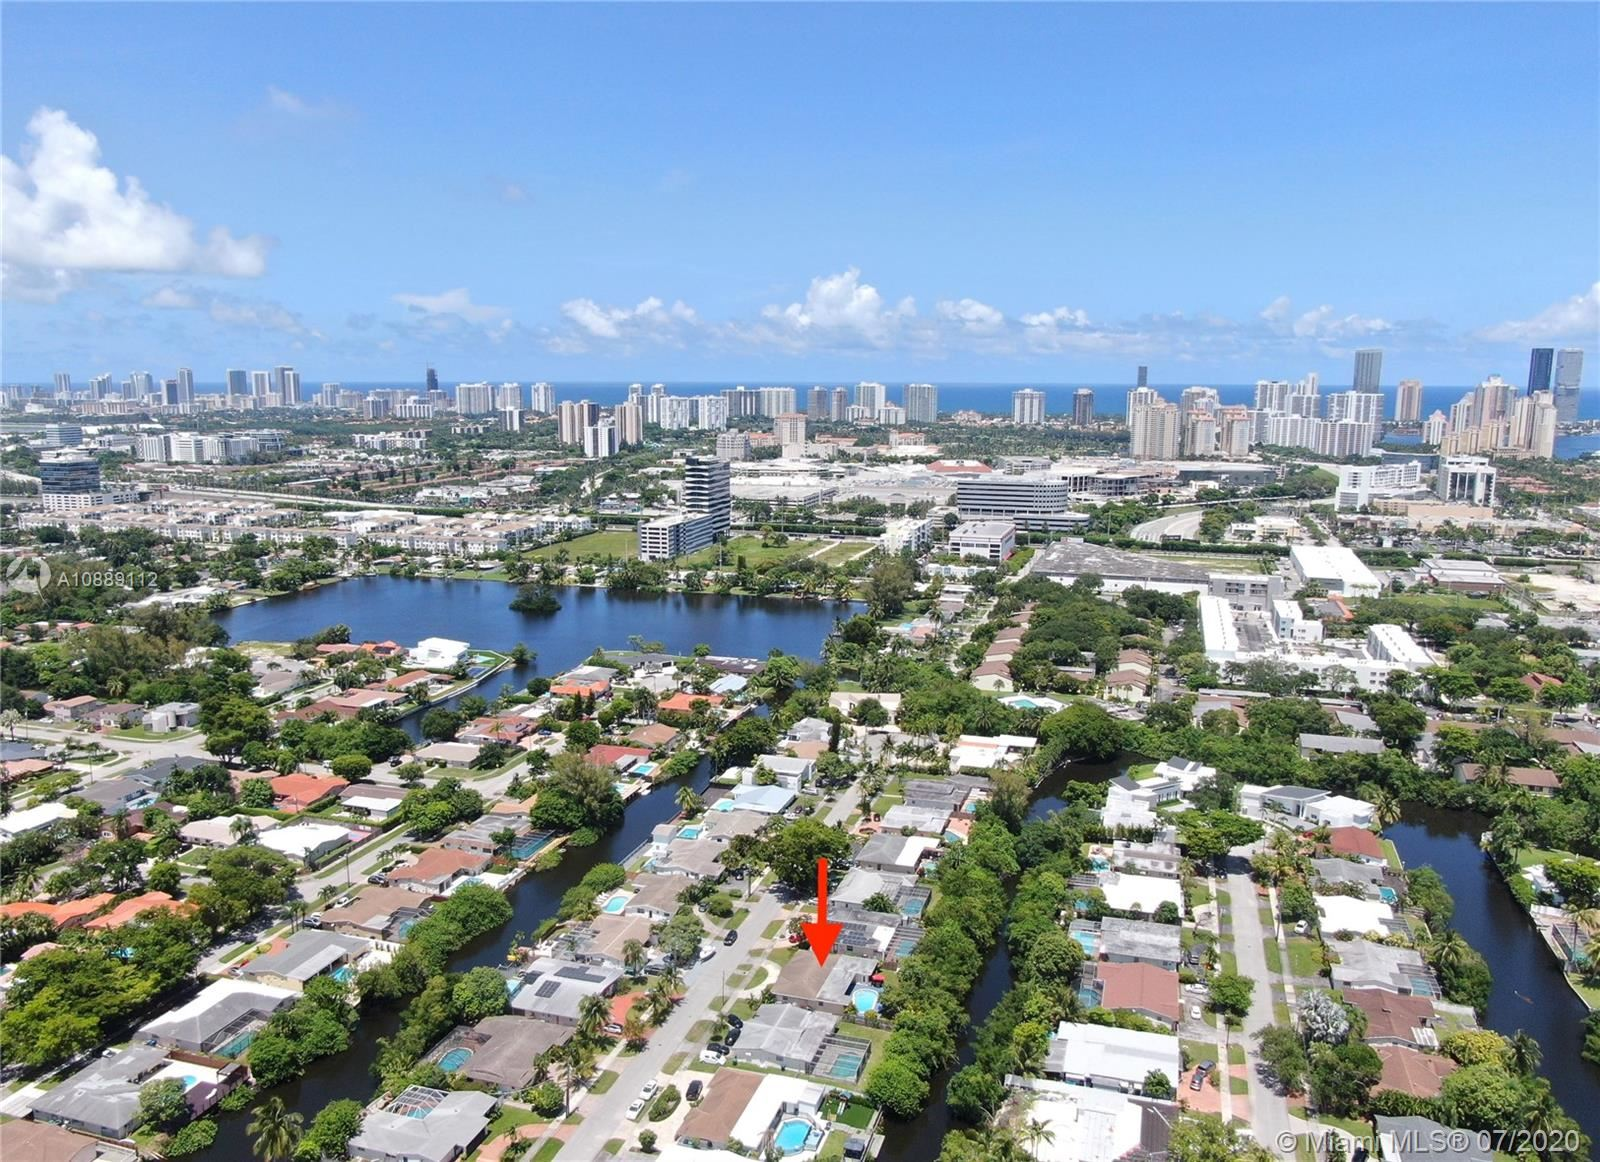 2350 NE 195th St, Miami, FL 33180 - #: A10889112